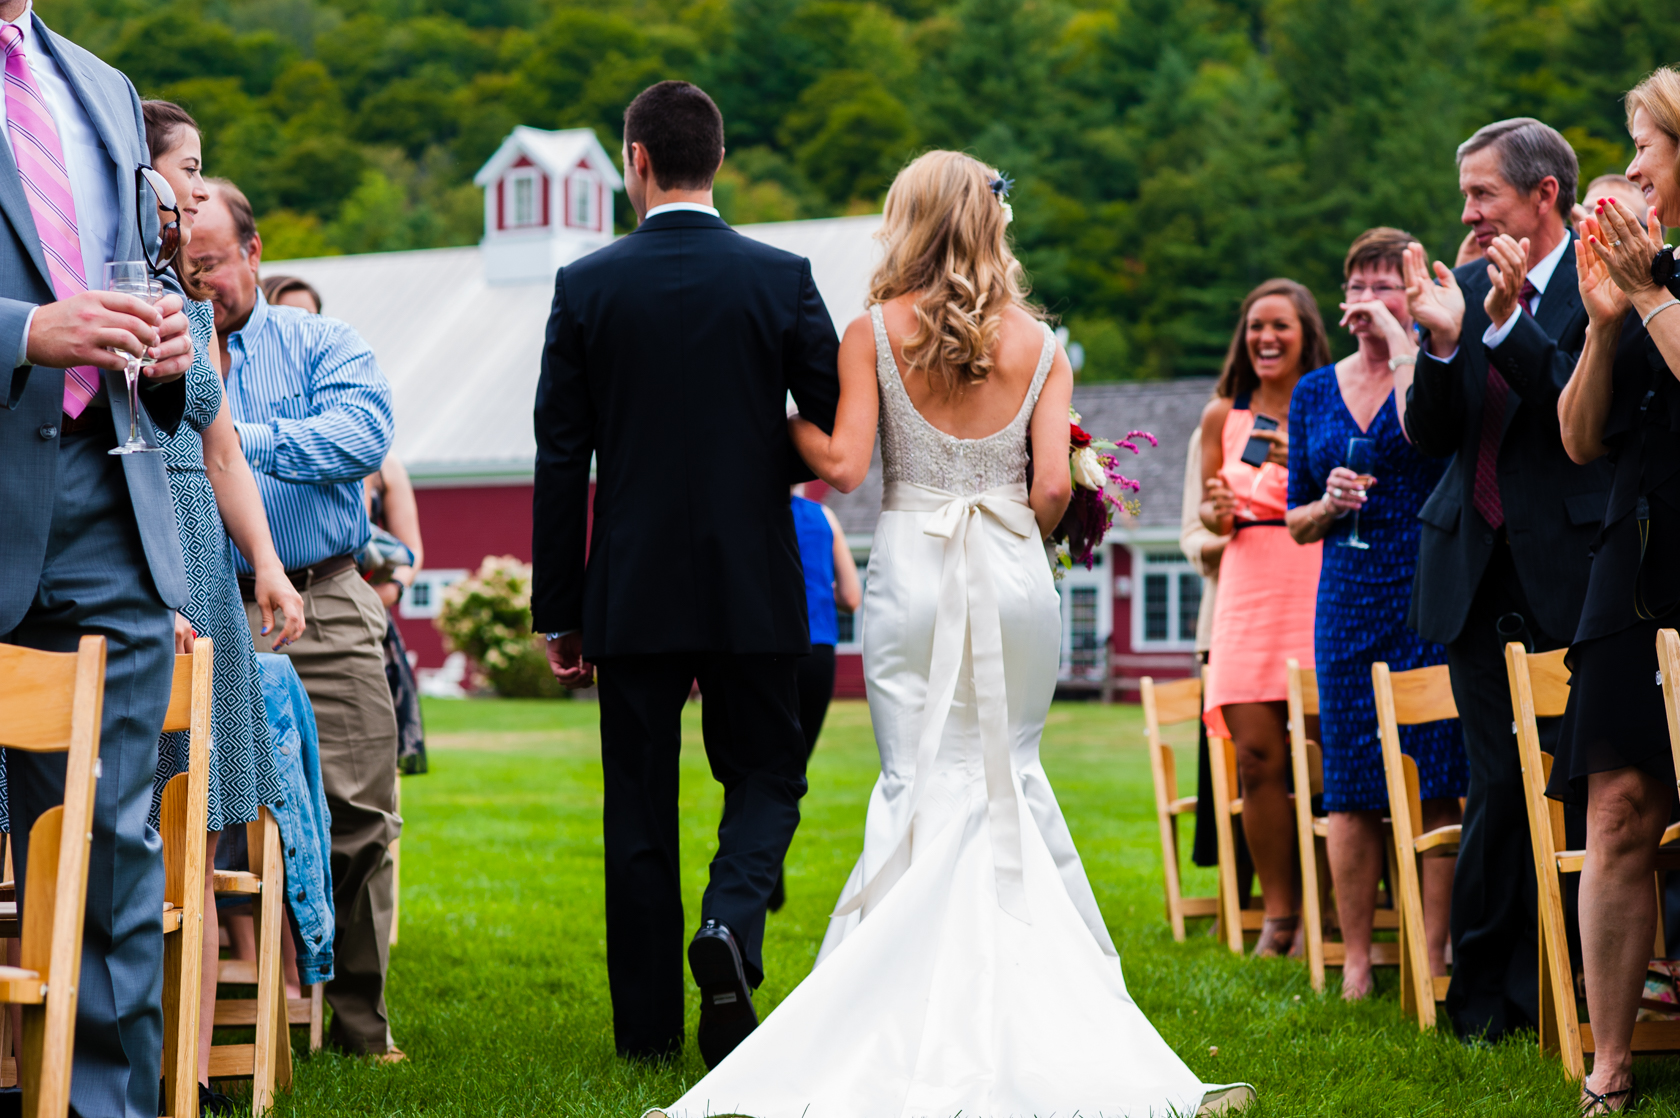 bride and groom walk down the aisle after their wedding ceremony